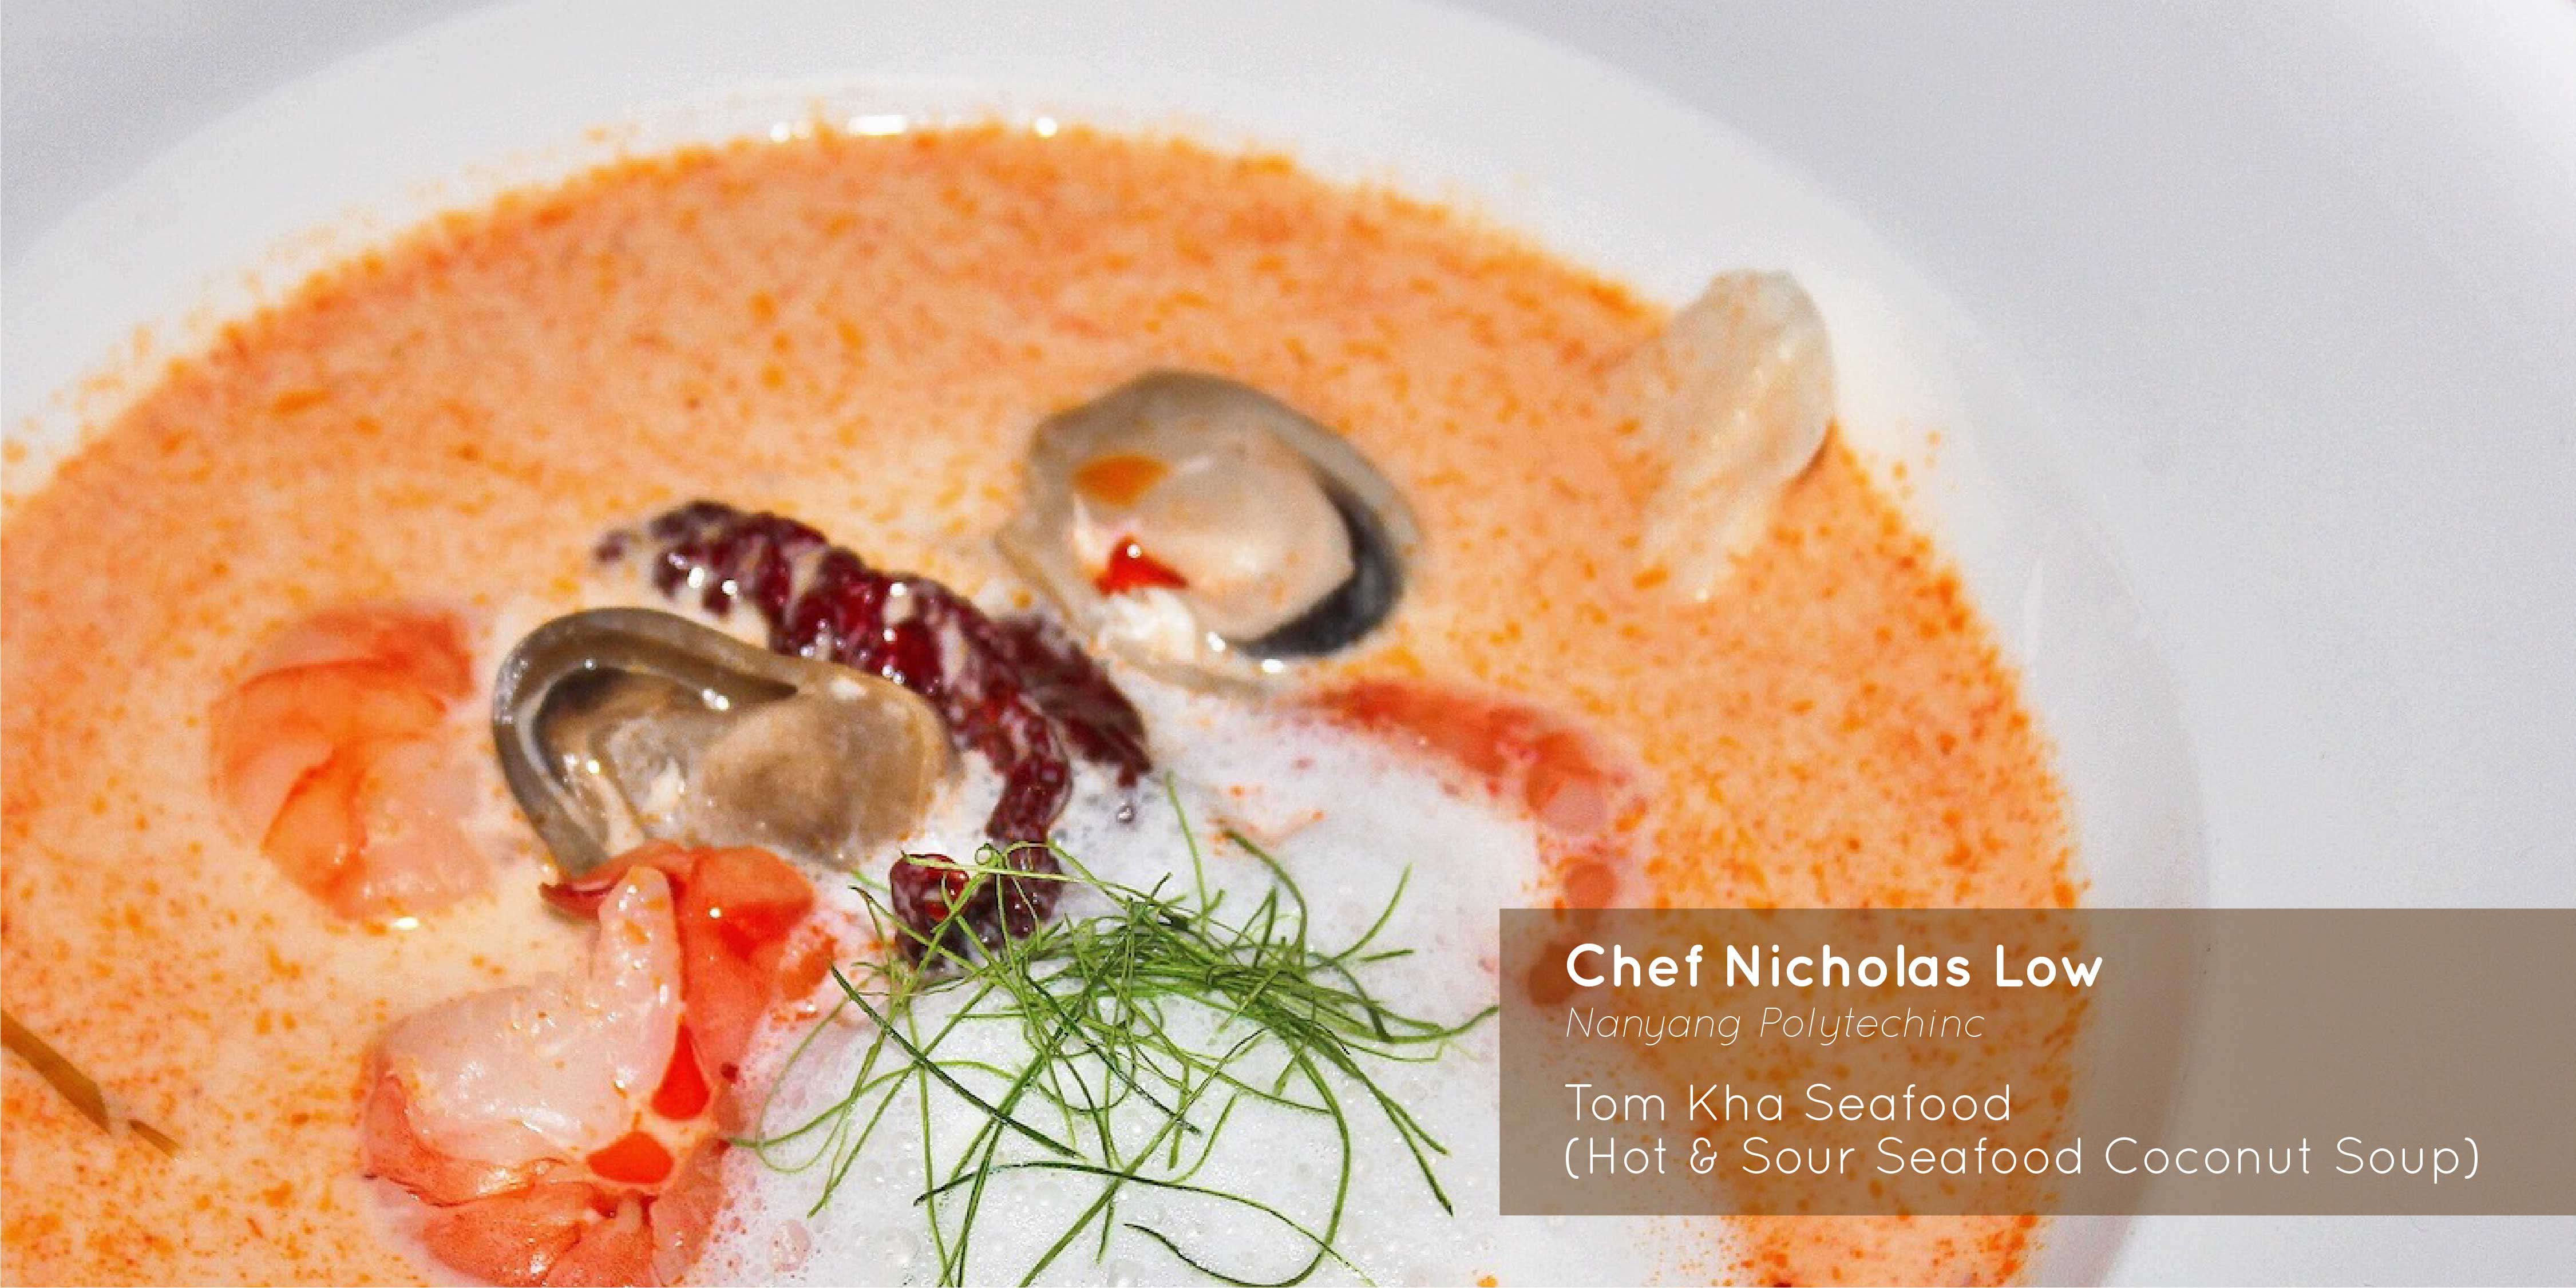 Sprout - Chef Nicholas Low - Tom Kha Seafood